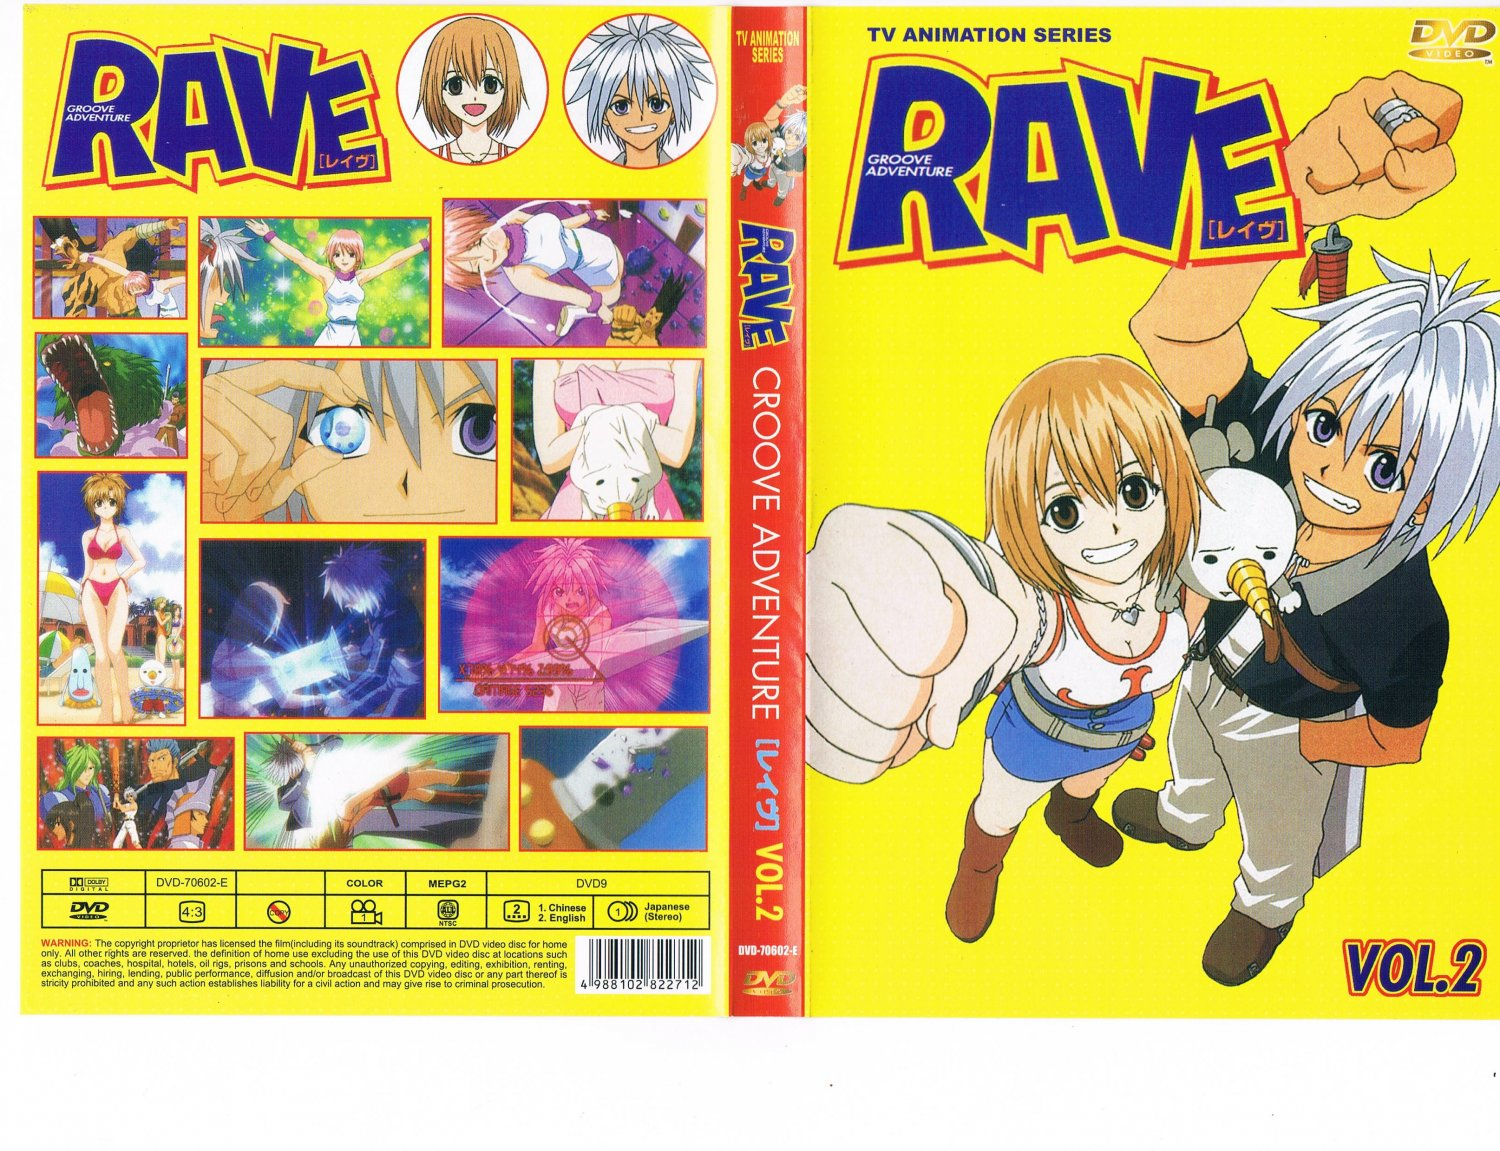 Rave : Groove Adventure Vol. 2 - TV Animation Series -Combined Shipping -Combined Shipping